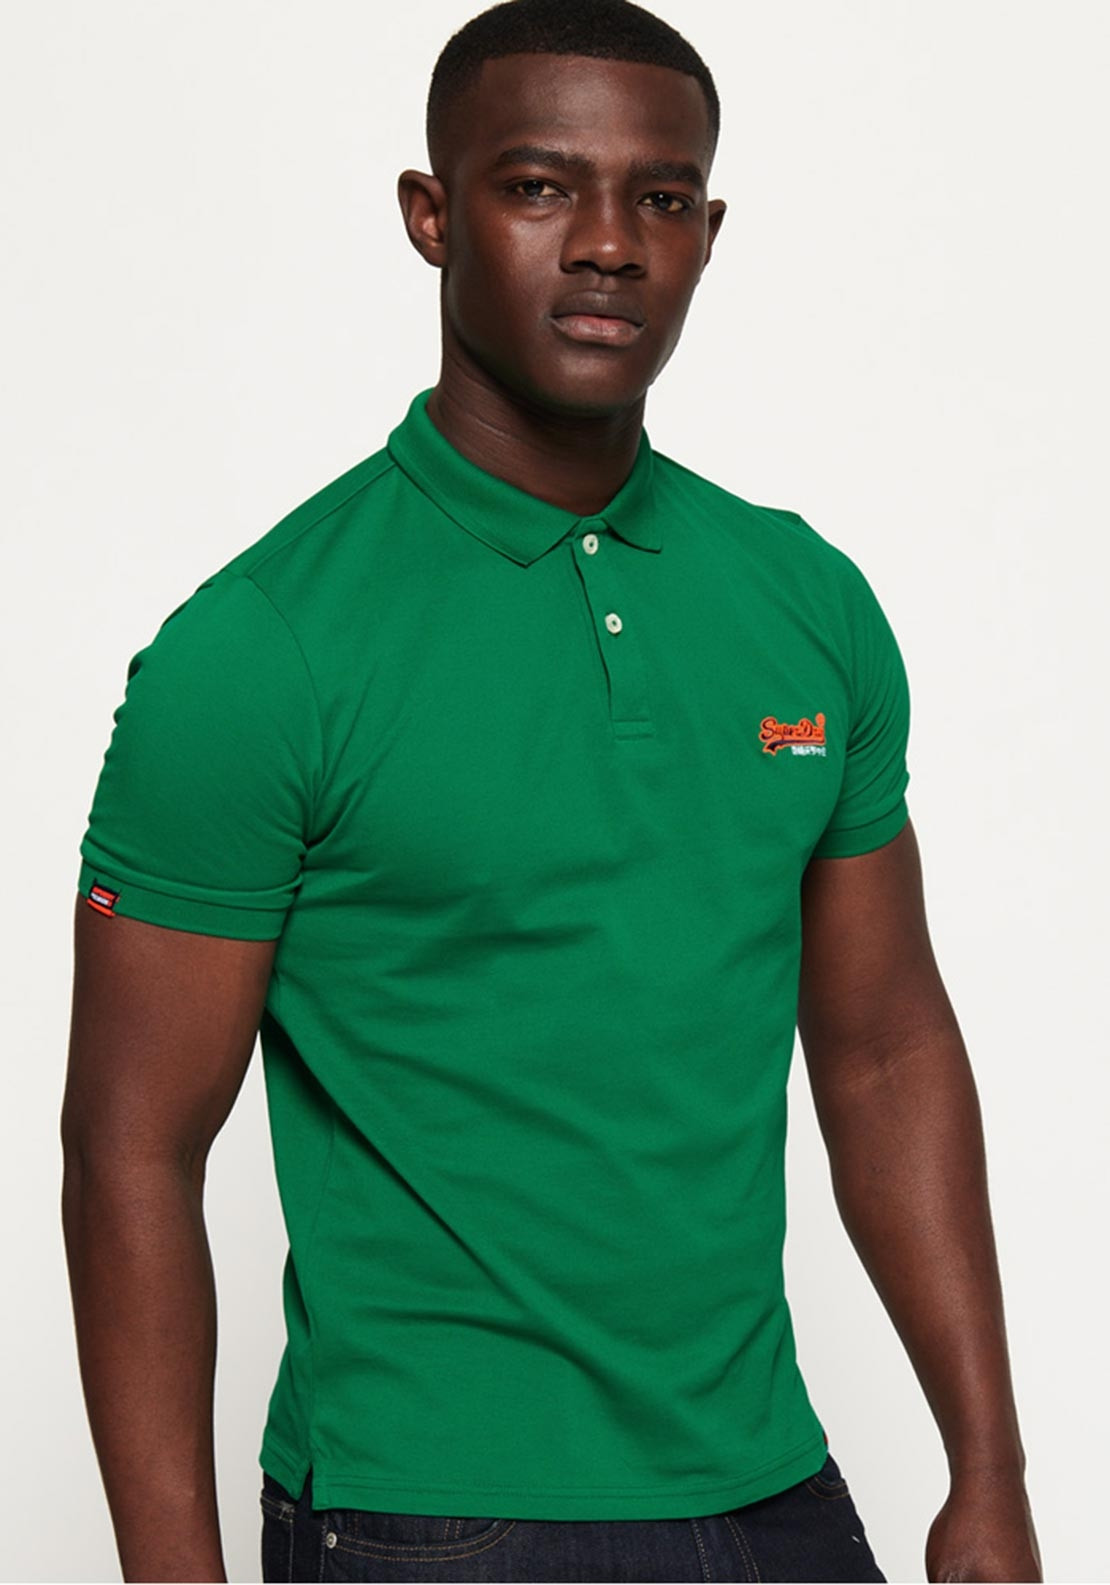 ed7bf6222eca Superdry Men's Mercerised Lite City Polo, Green. Be the first to review  this product